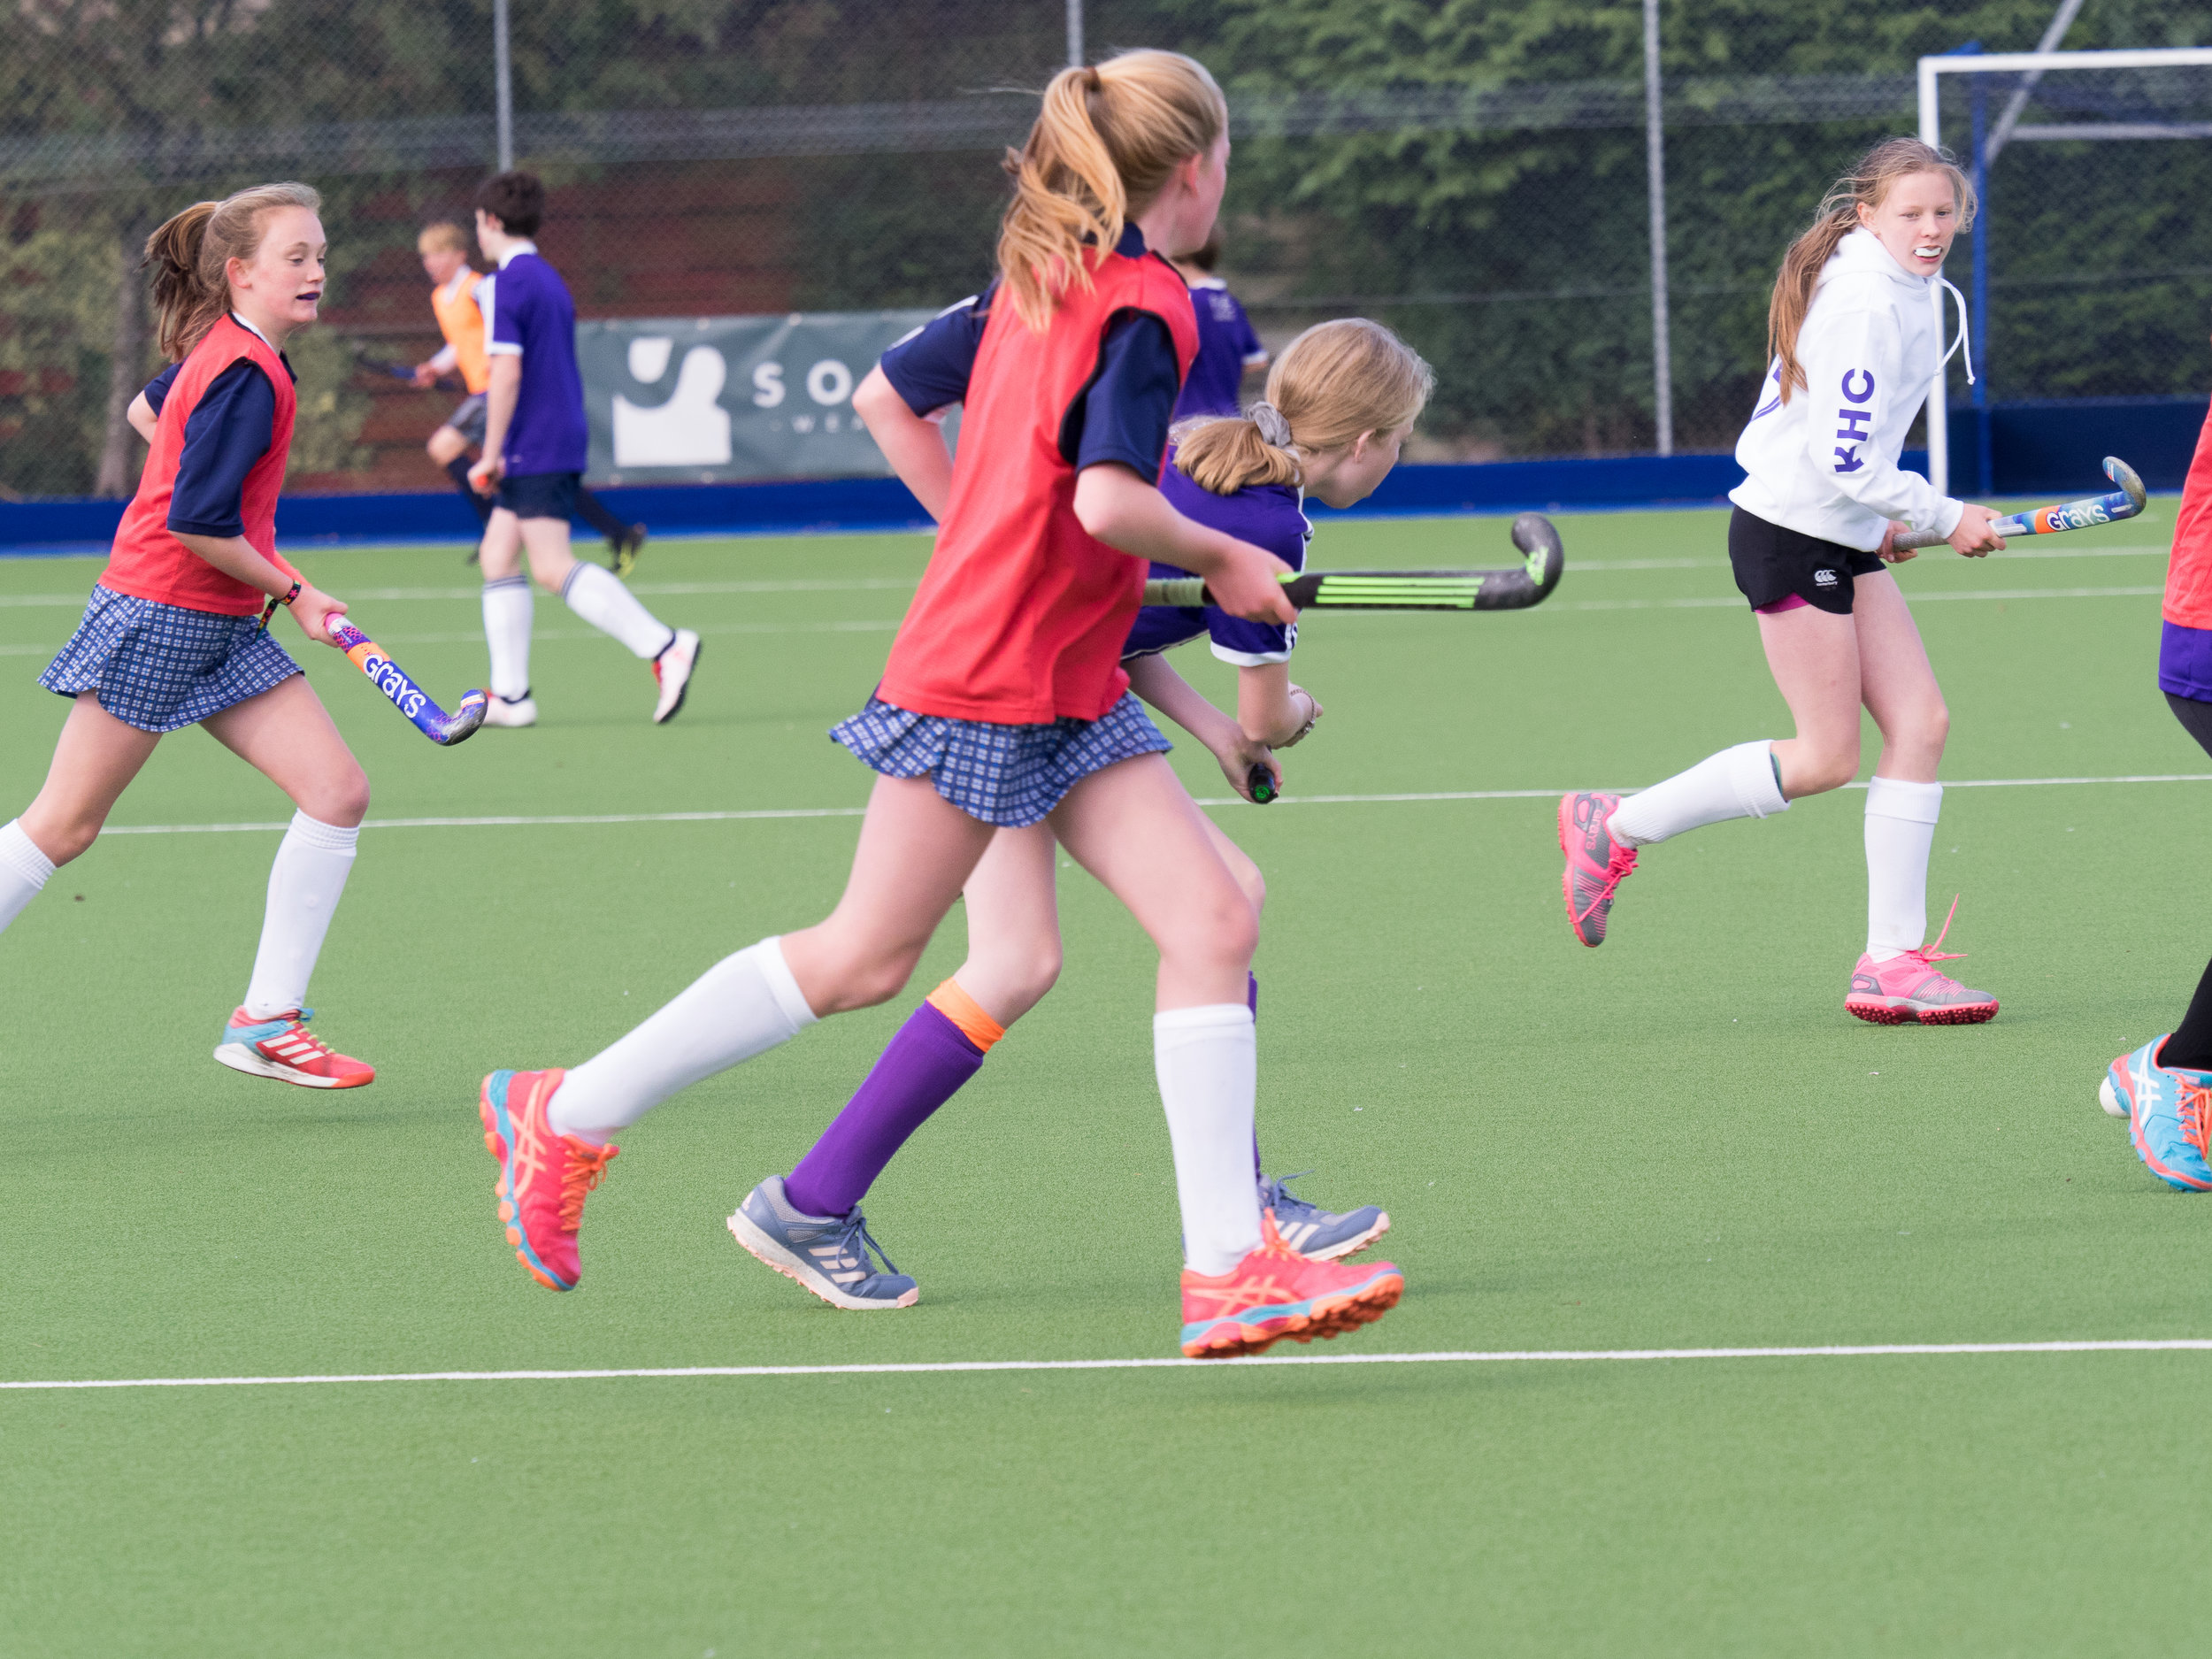 Kinross Hockey Sept 30th-23.jpg